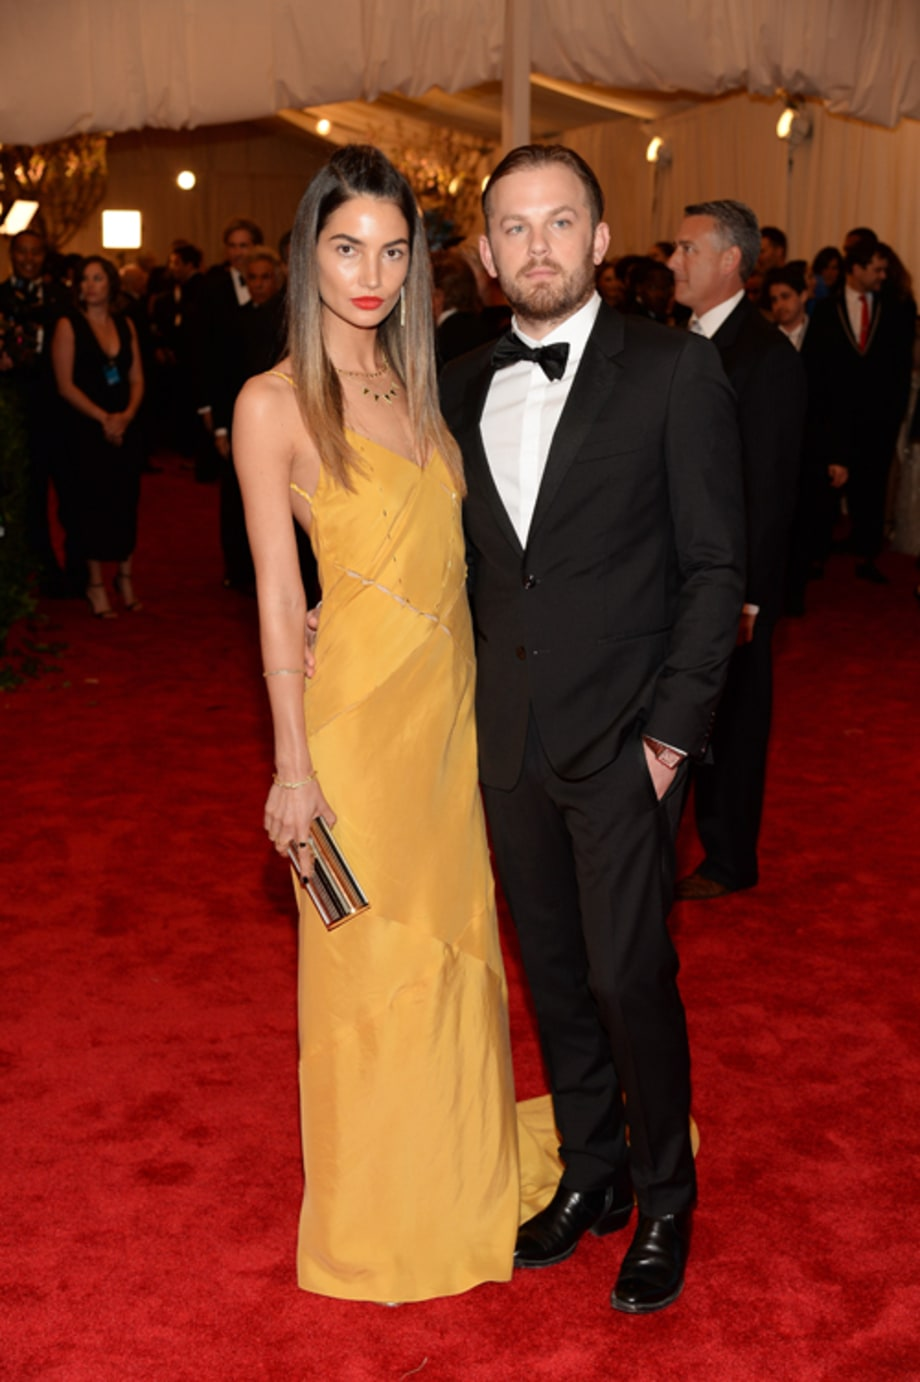 Lily Aldridge and Kings of Leon's Caleb Followill